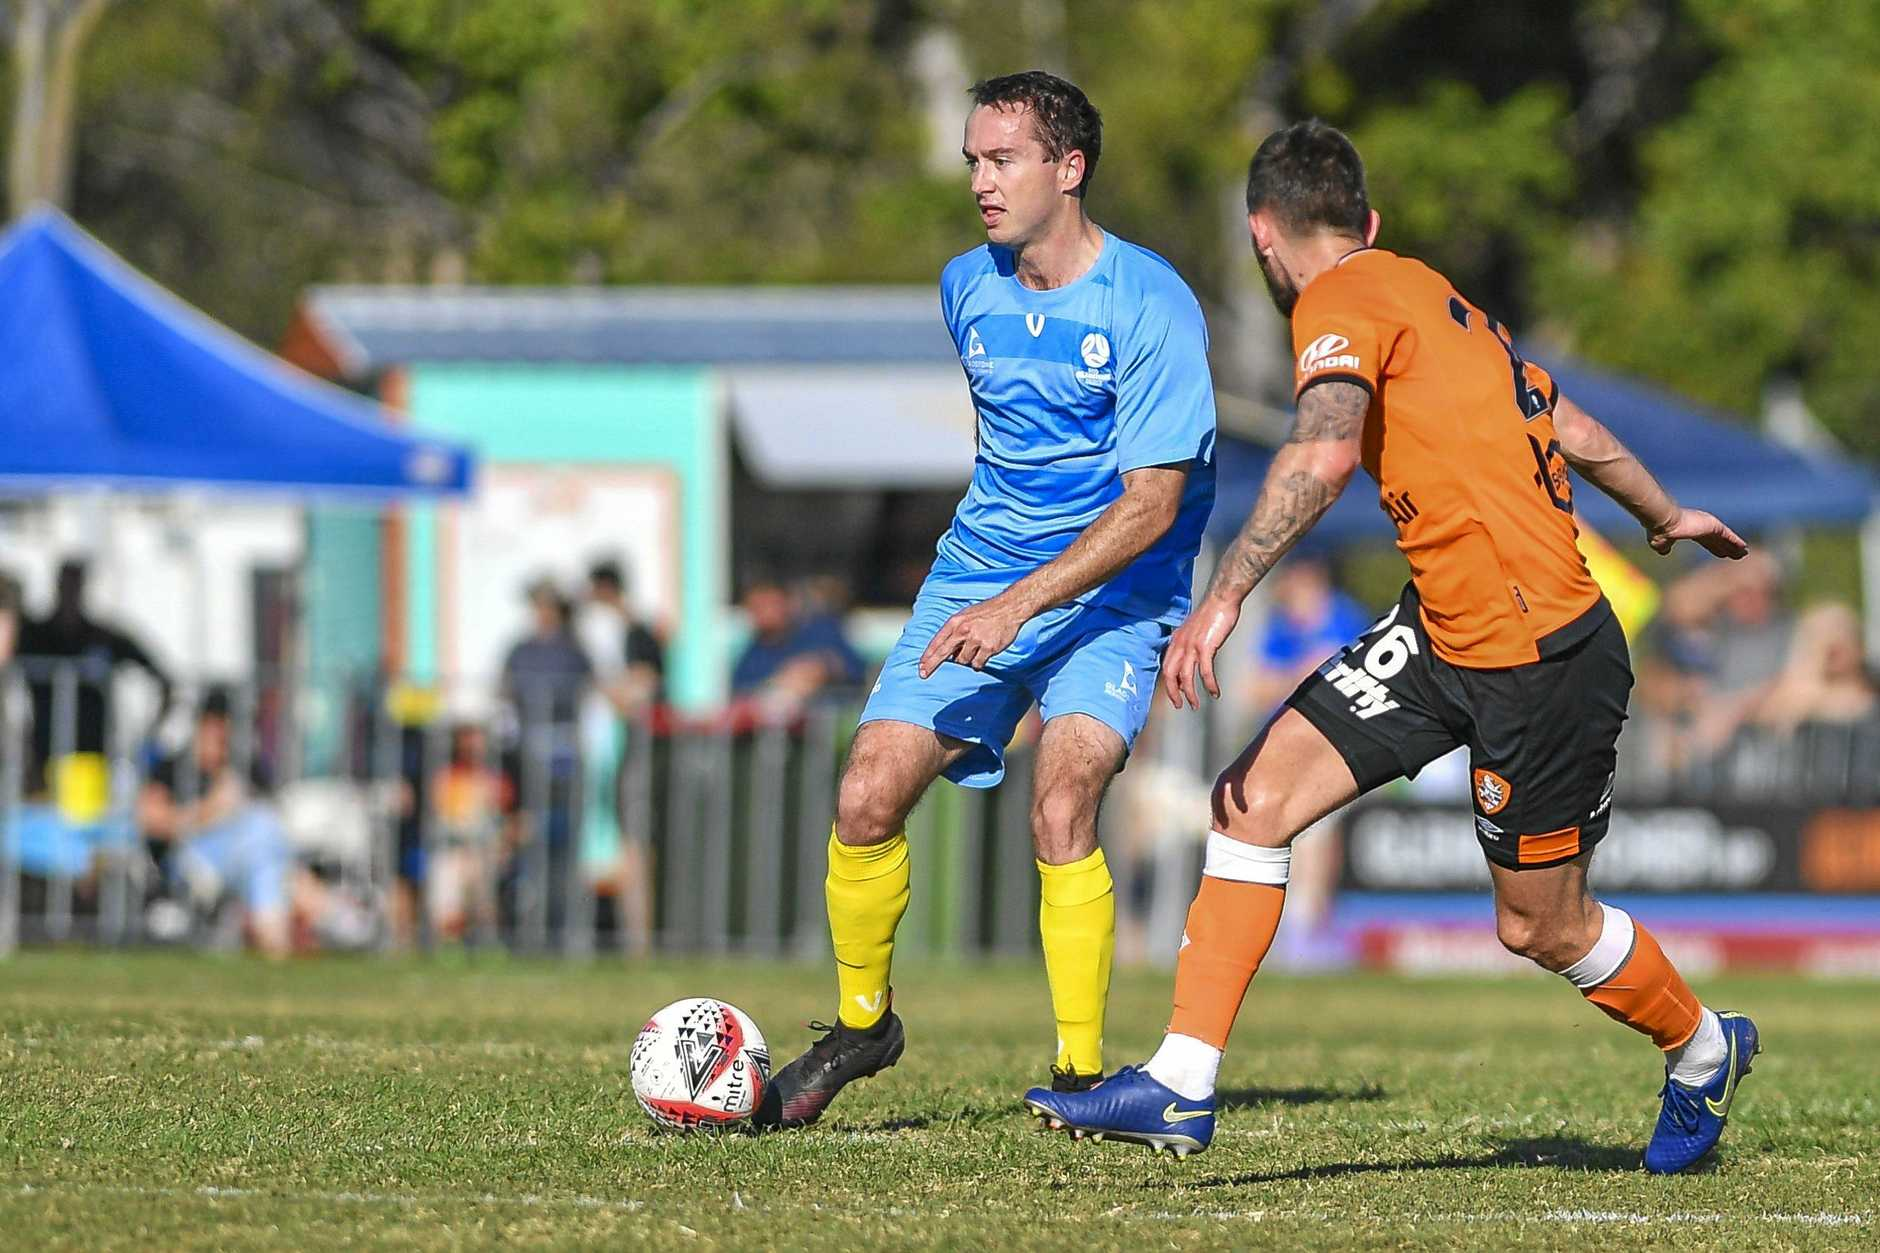 The Brisbane Roar took on a Gladstone Select XI at Marley Brown Oval on Saturday, their third in the leadup to the 2019/20 Hyundai A-League season. PICTURED: Garth Lawrie